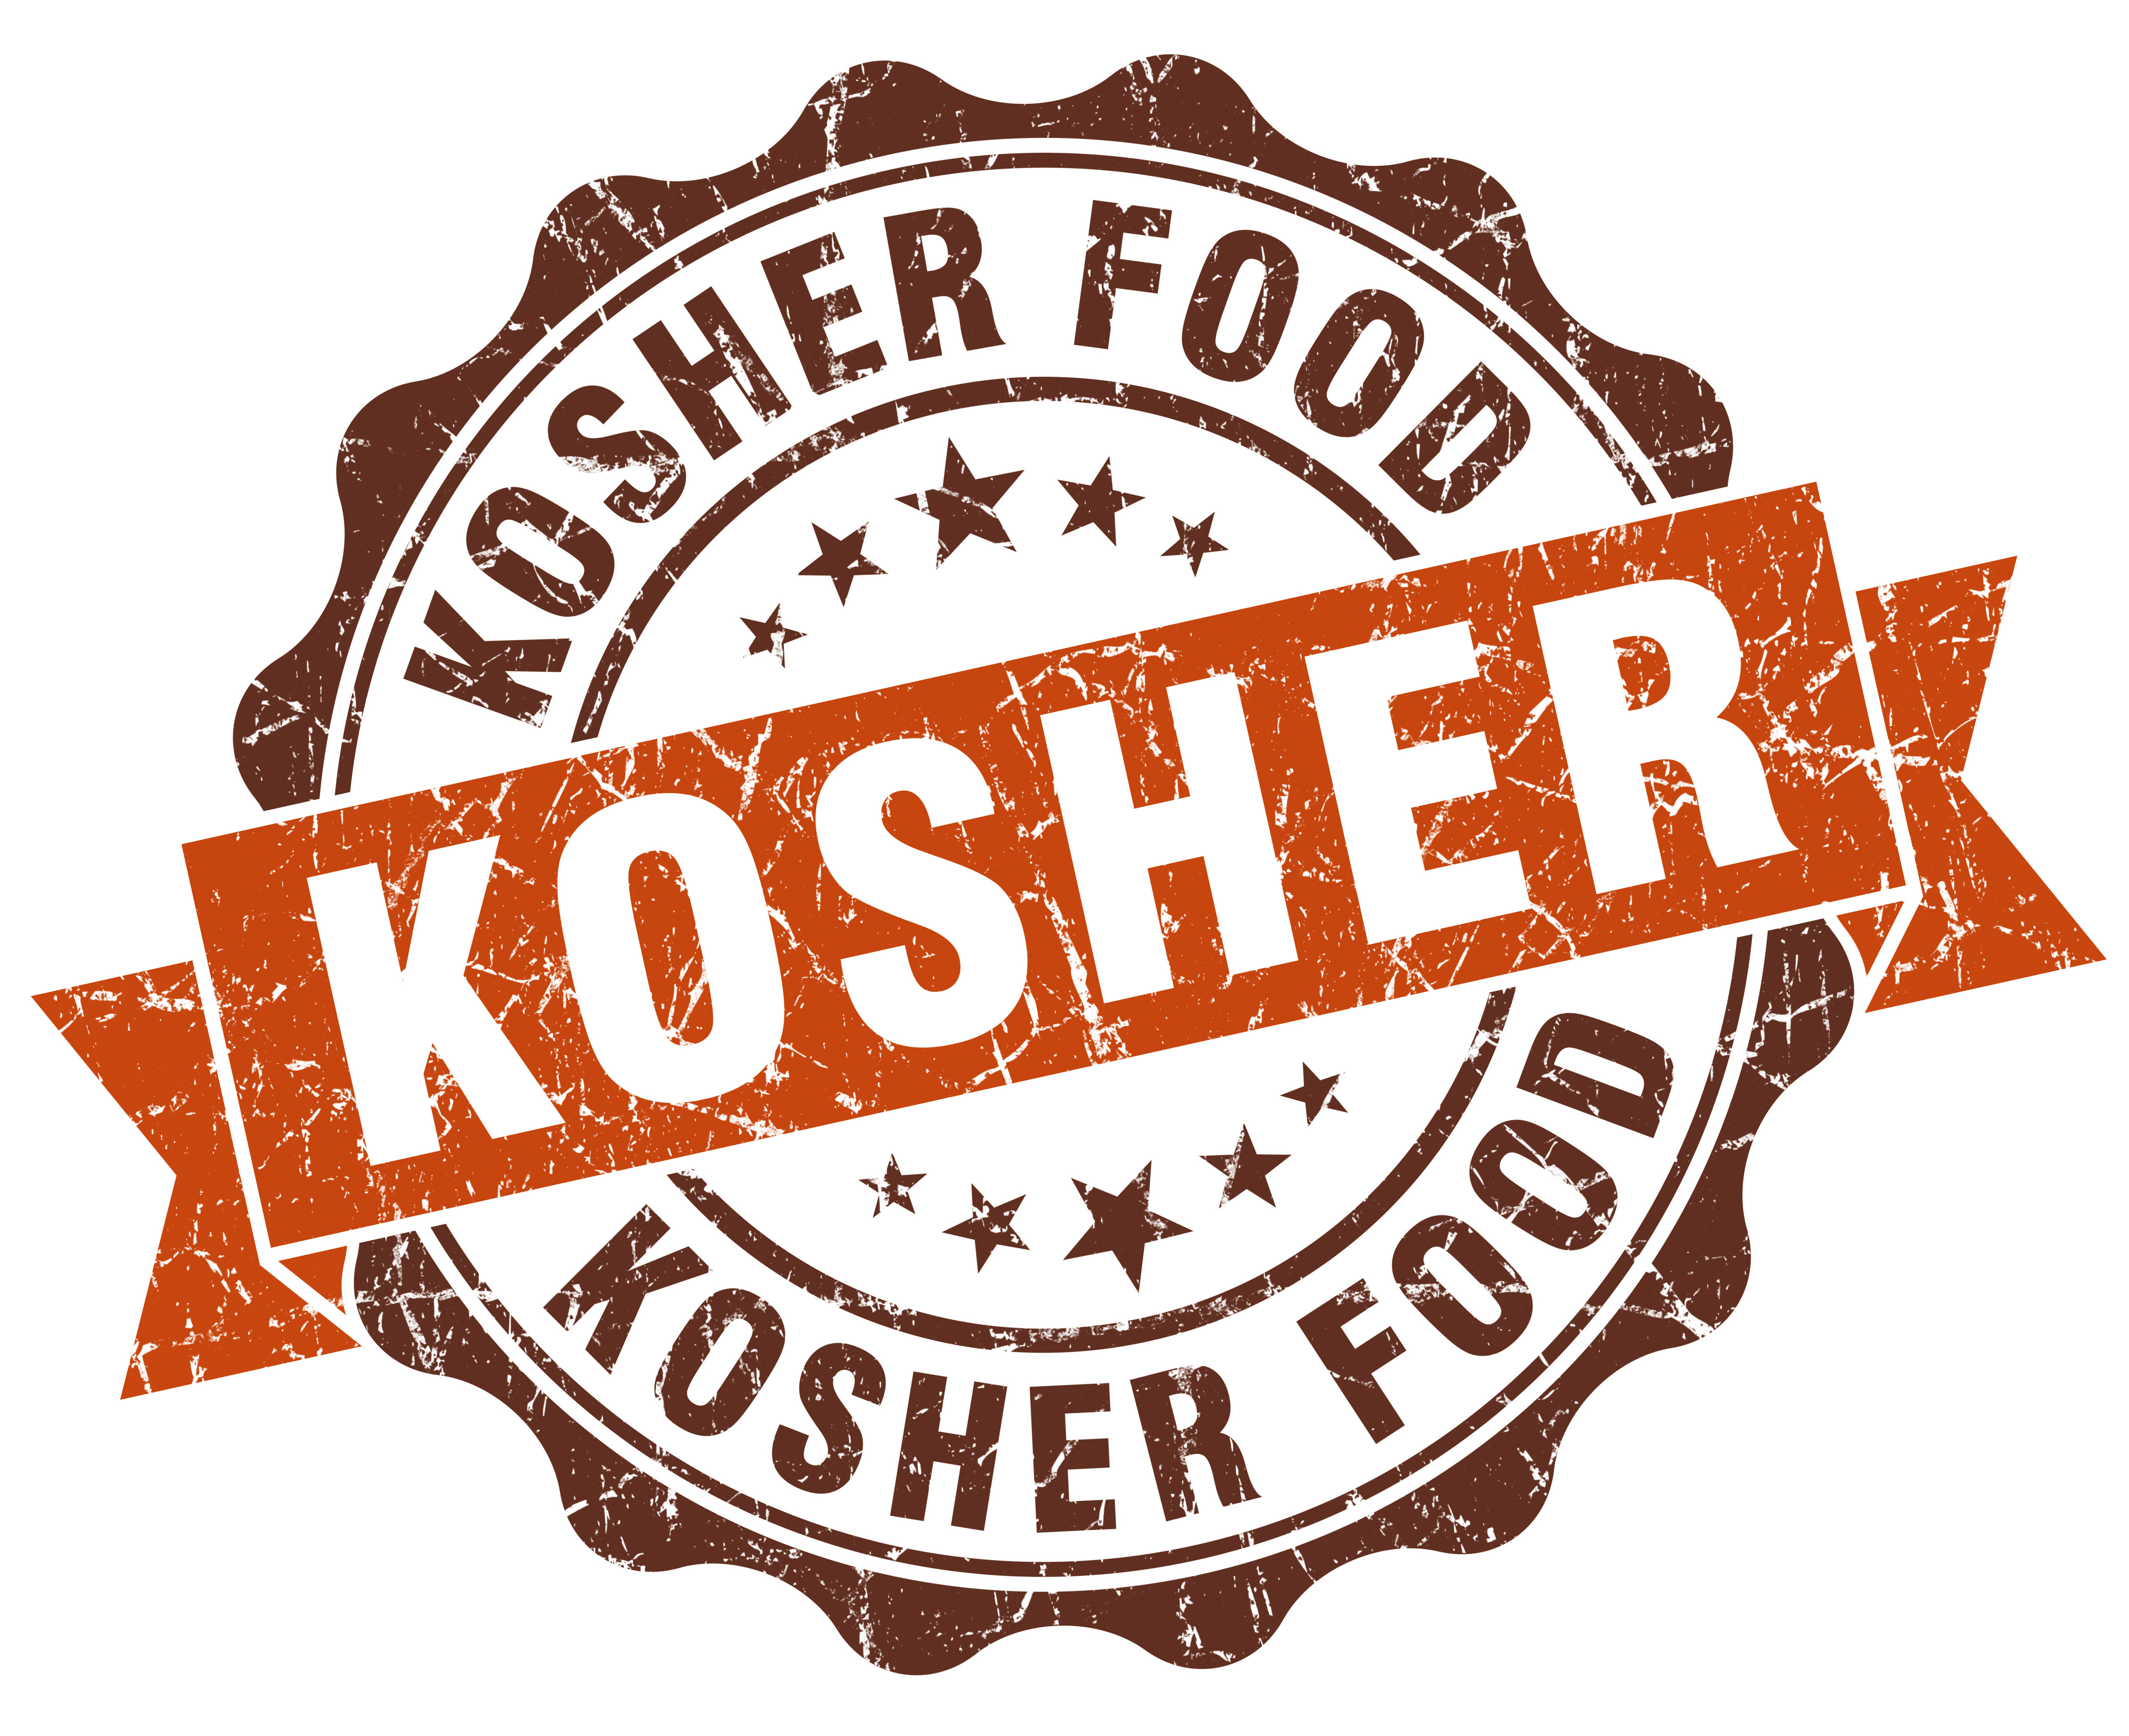 Kosher Seal likewise IMG 0147 in addition p2 together with spiderman cake furthermore 1214832162 besides USE cheese and bacon scones further skeletal muscle fatigue and cellular mechanisms 11 638 together with Intussusception likewise copra in addition  as well 010. on 4678